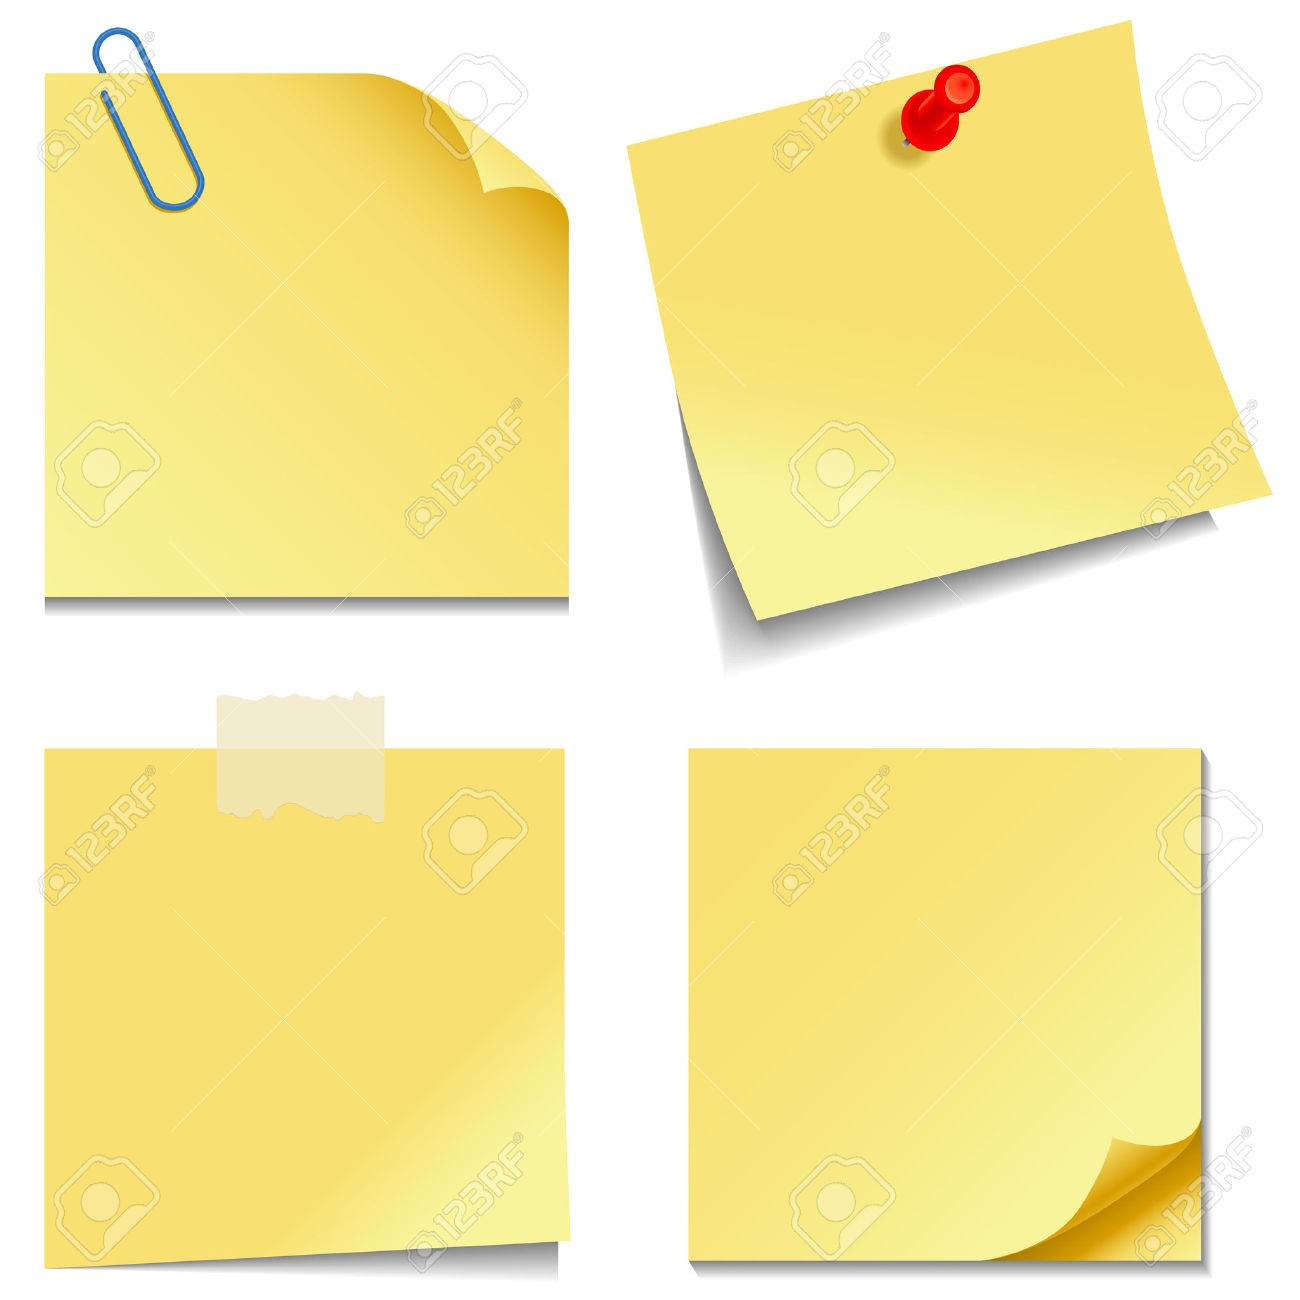 Sticky Notes - Set of yellow sticky notes isolated on white background - 23103053